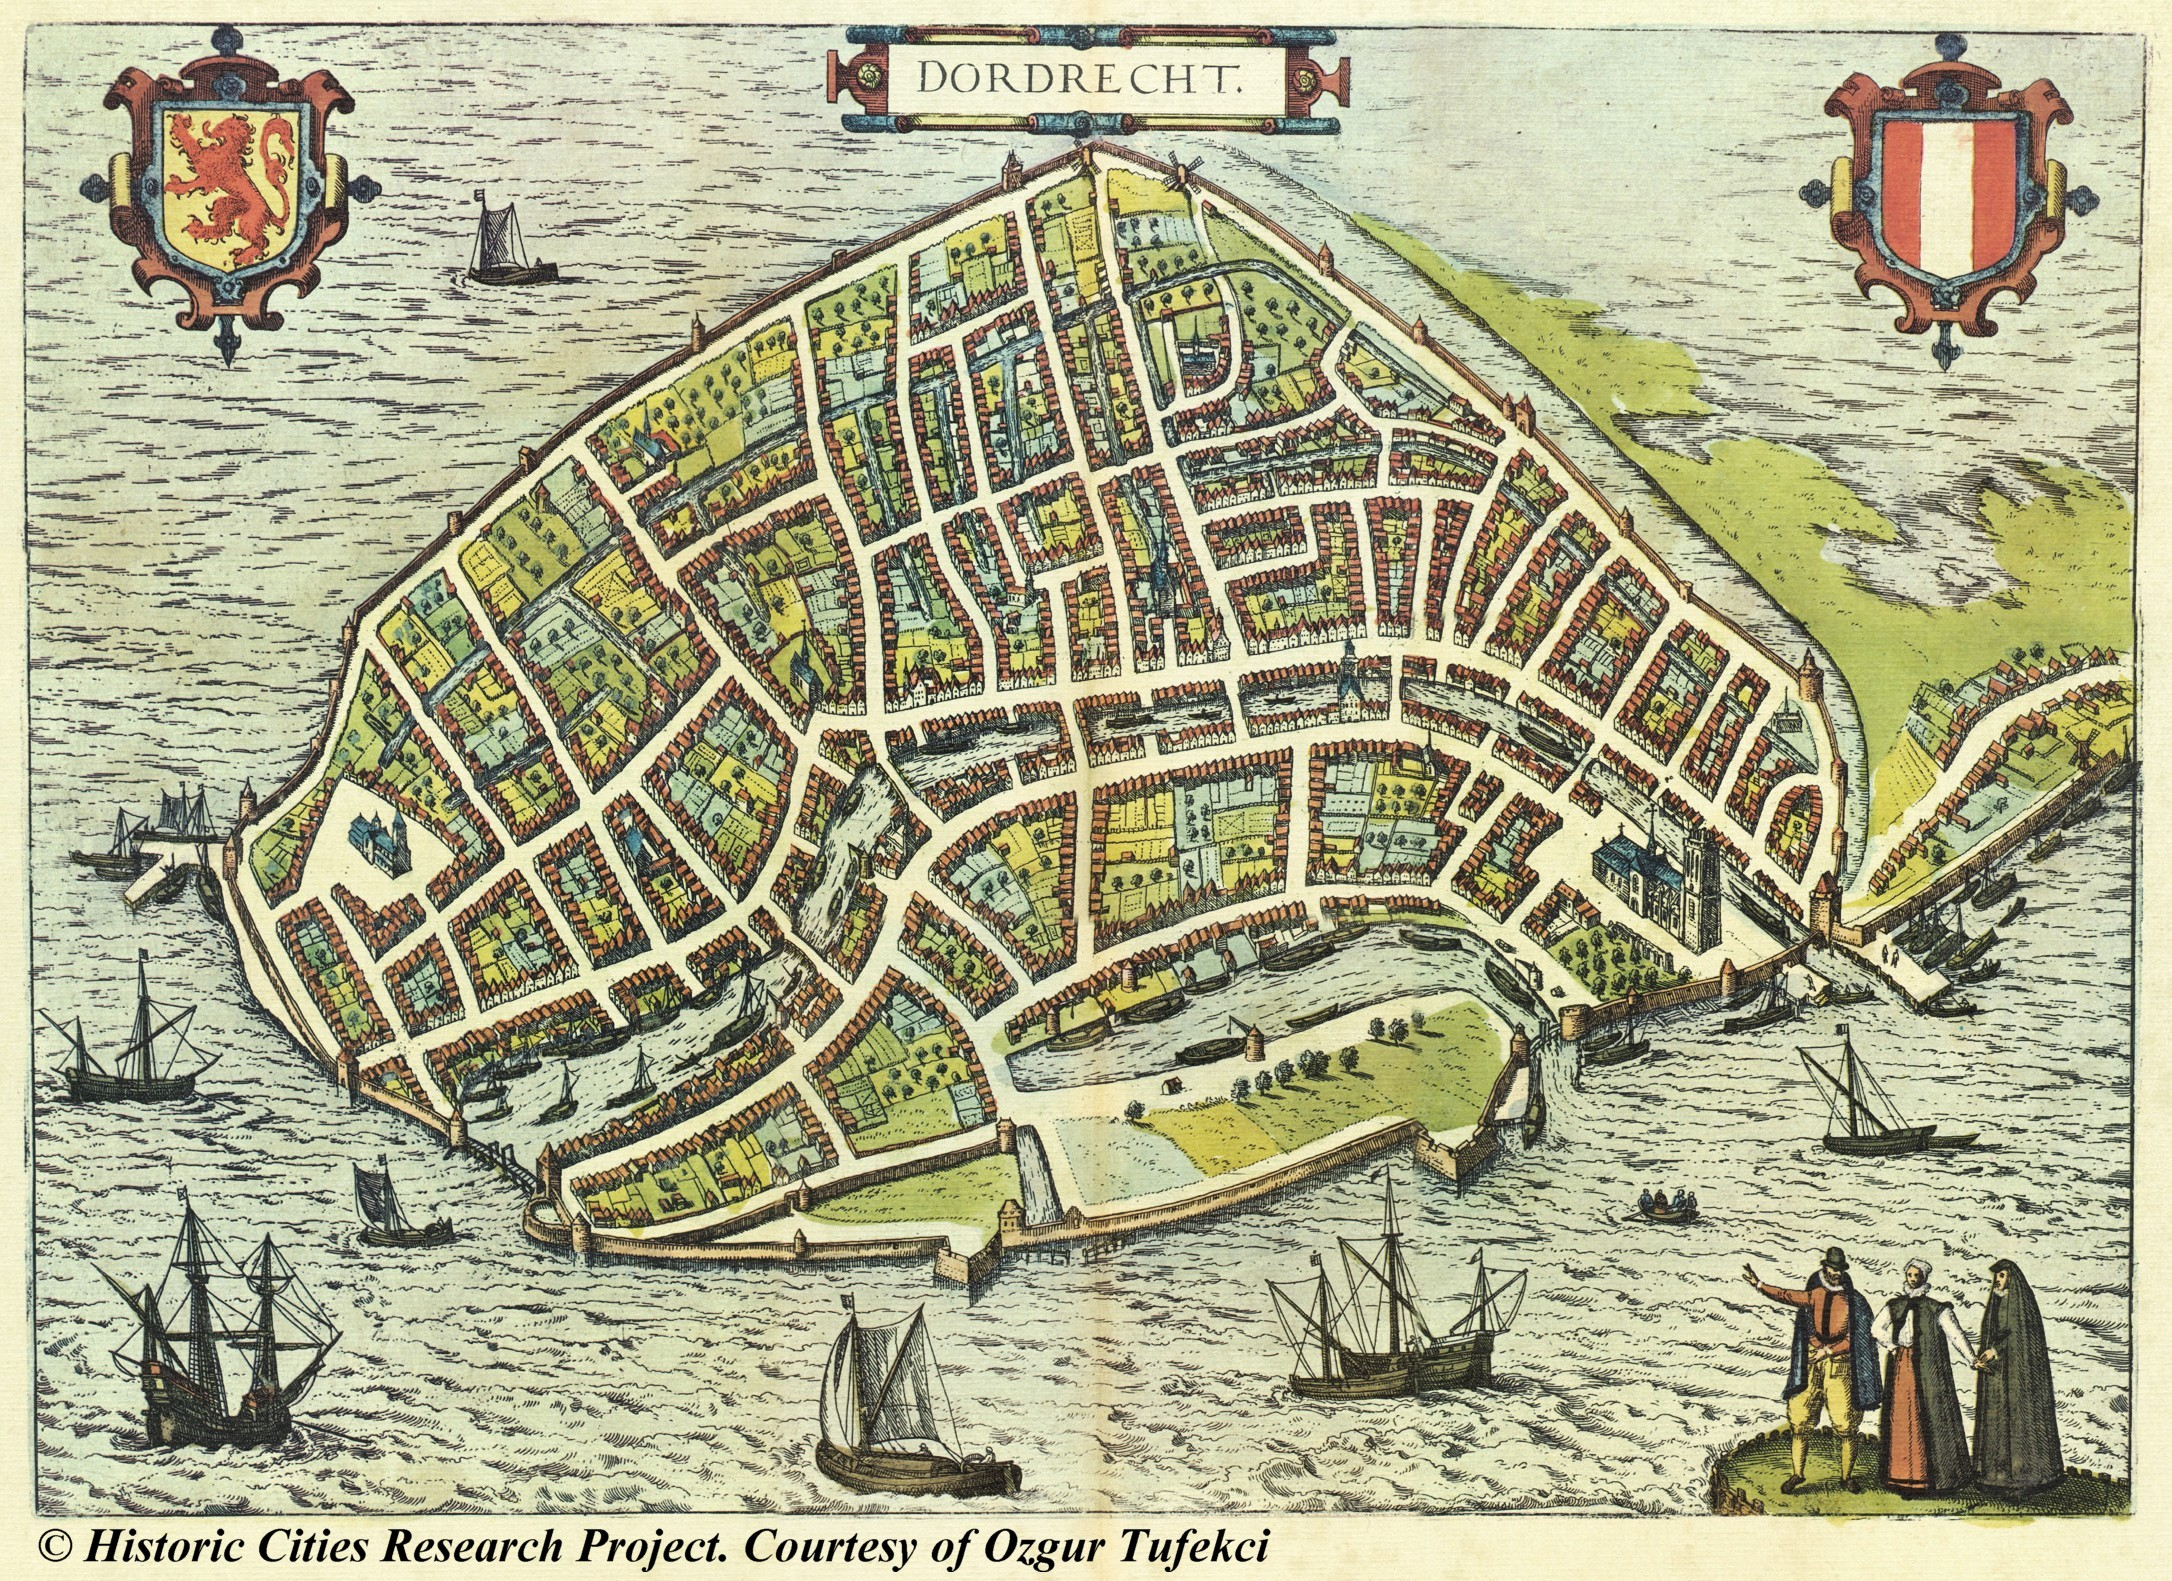 Map of Dordrecht 1581 Braun and Hogenberg